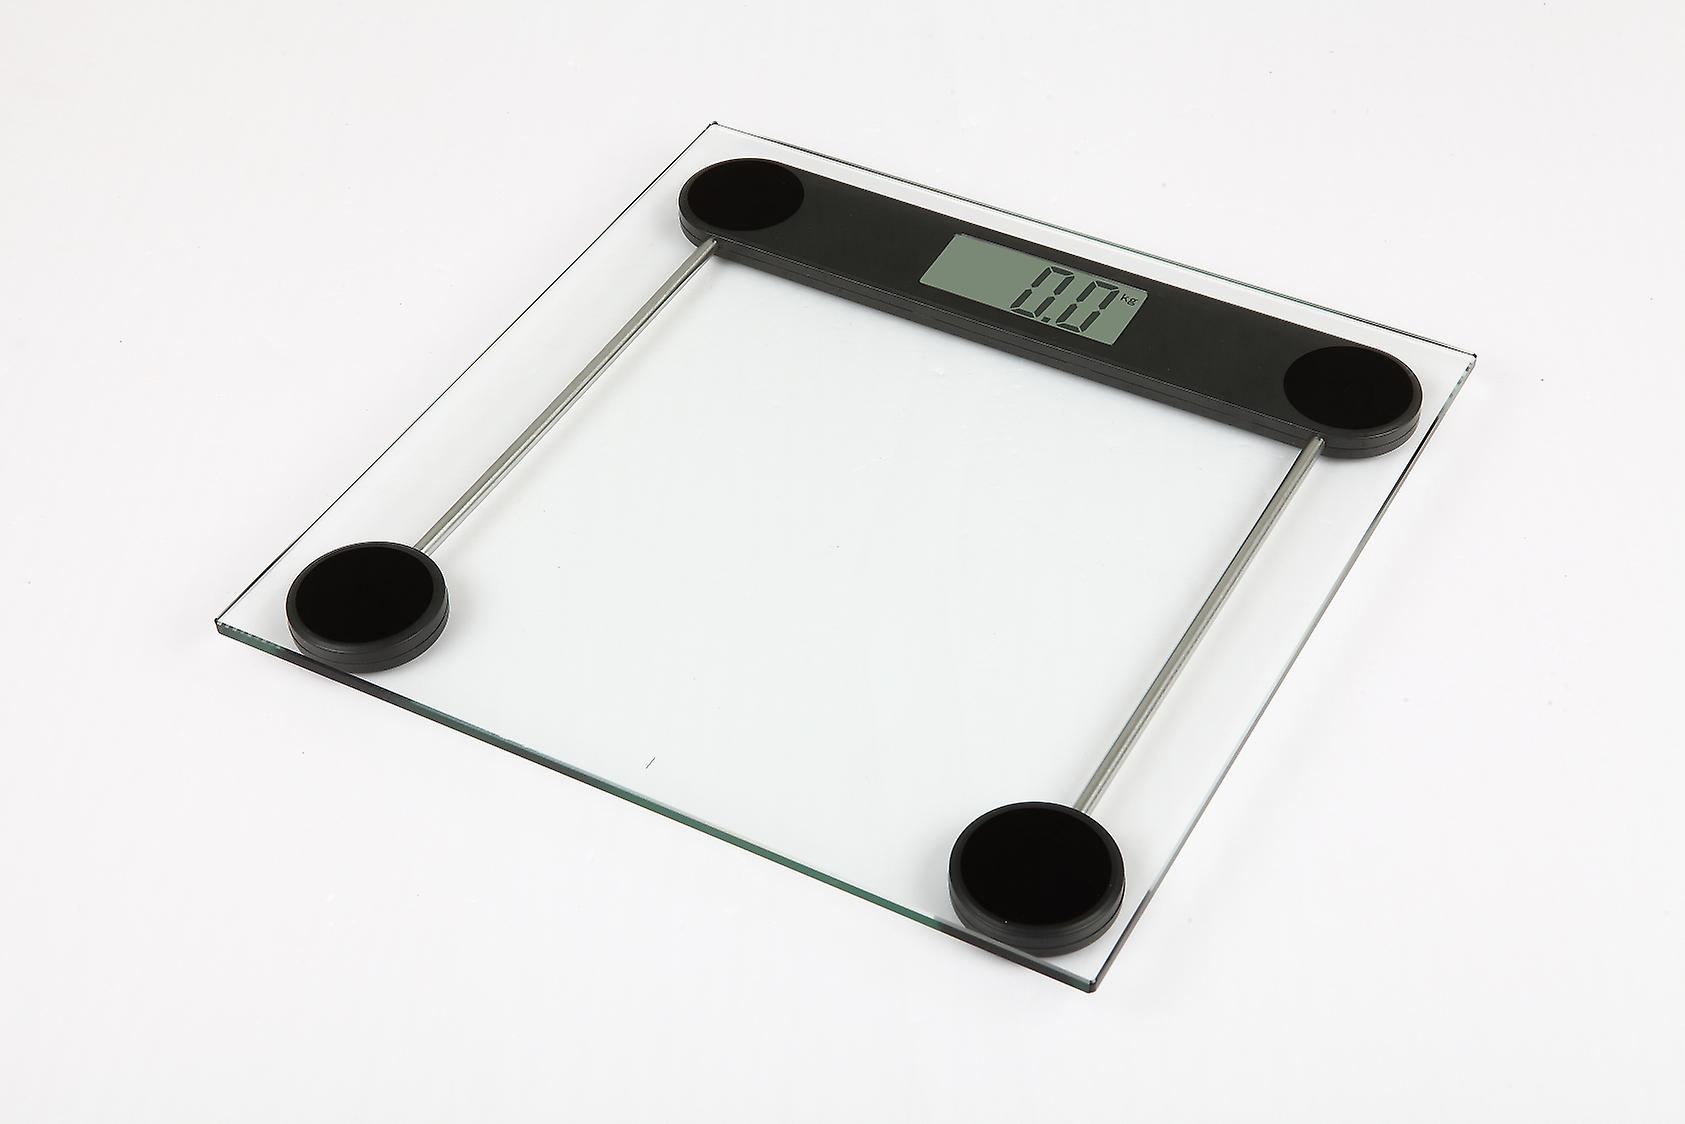 kabalo 180kg modern glass household bathroom scales premier electronic digital personal scale with large lcd - Bathroom Scales